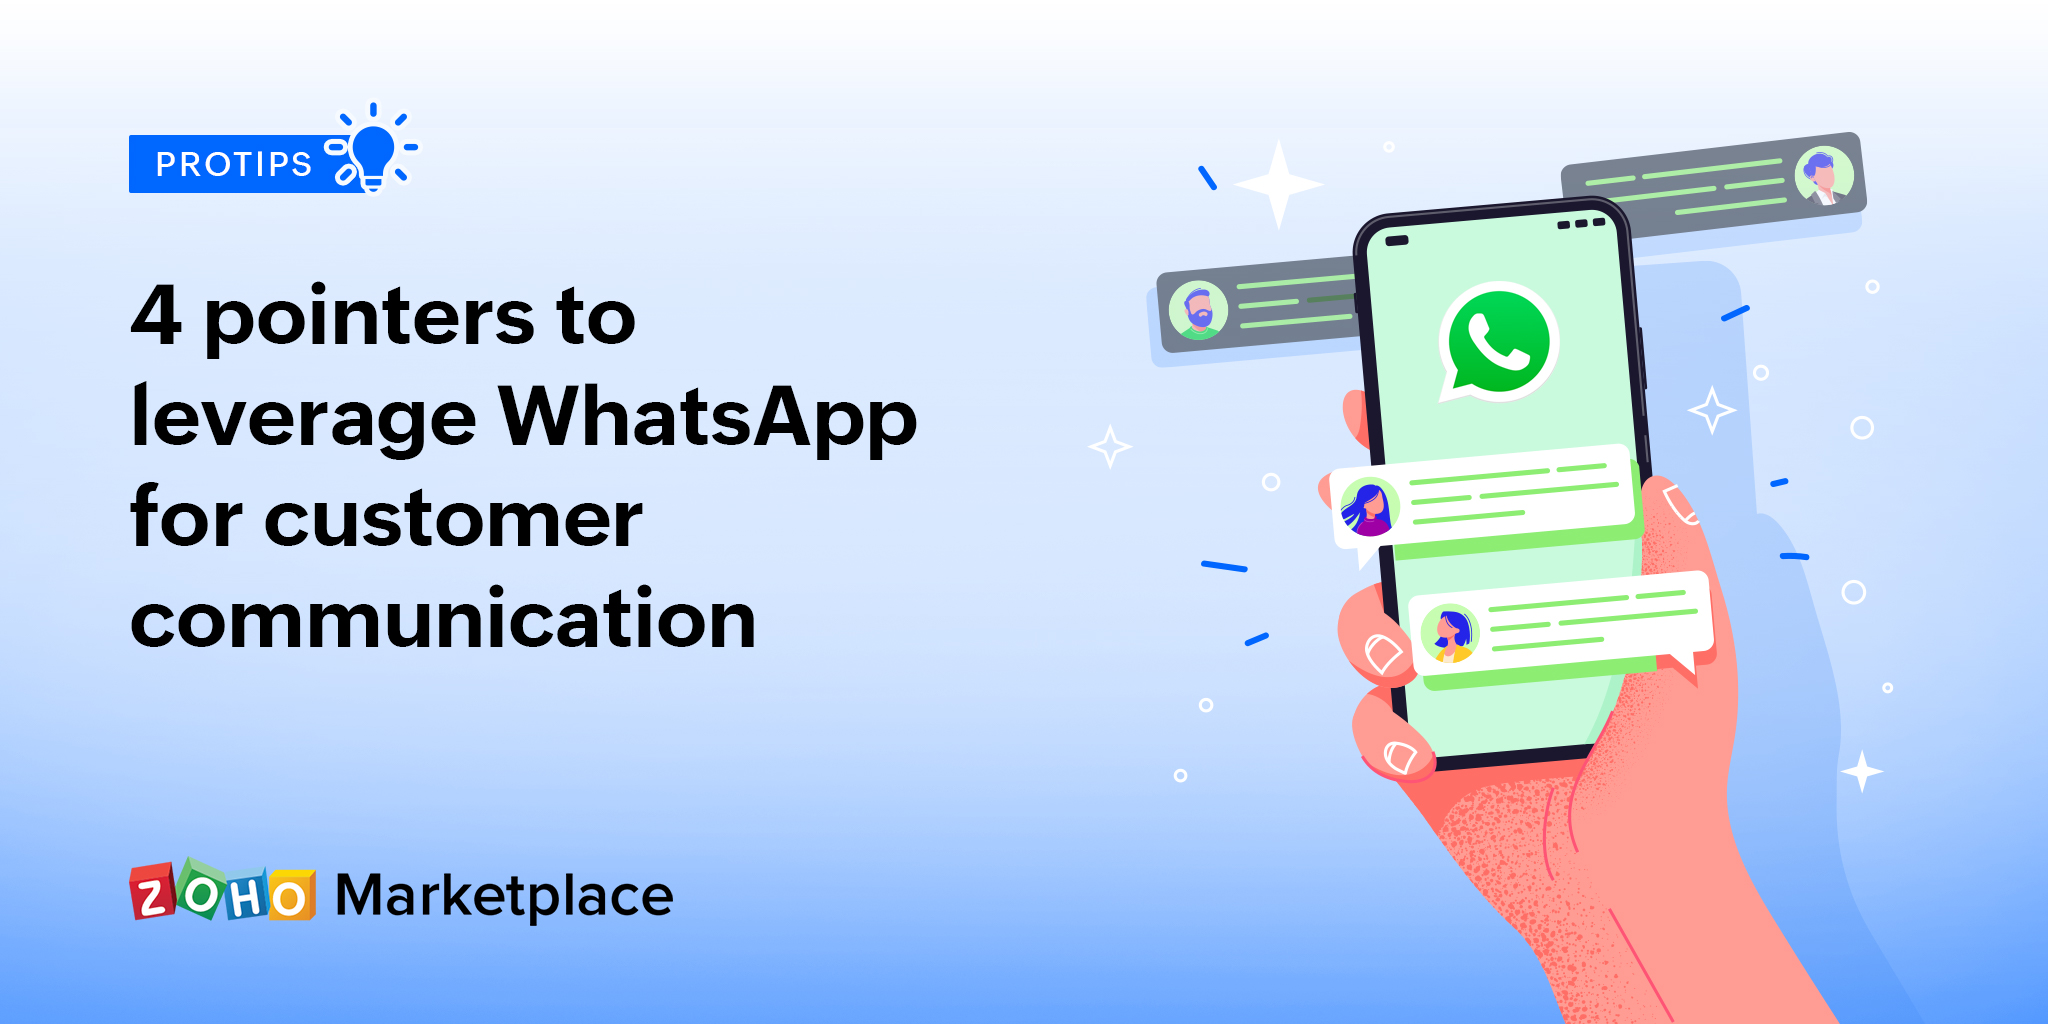 ProTips: 4 pointers to leverage WhatsApp for customer communication